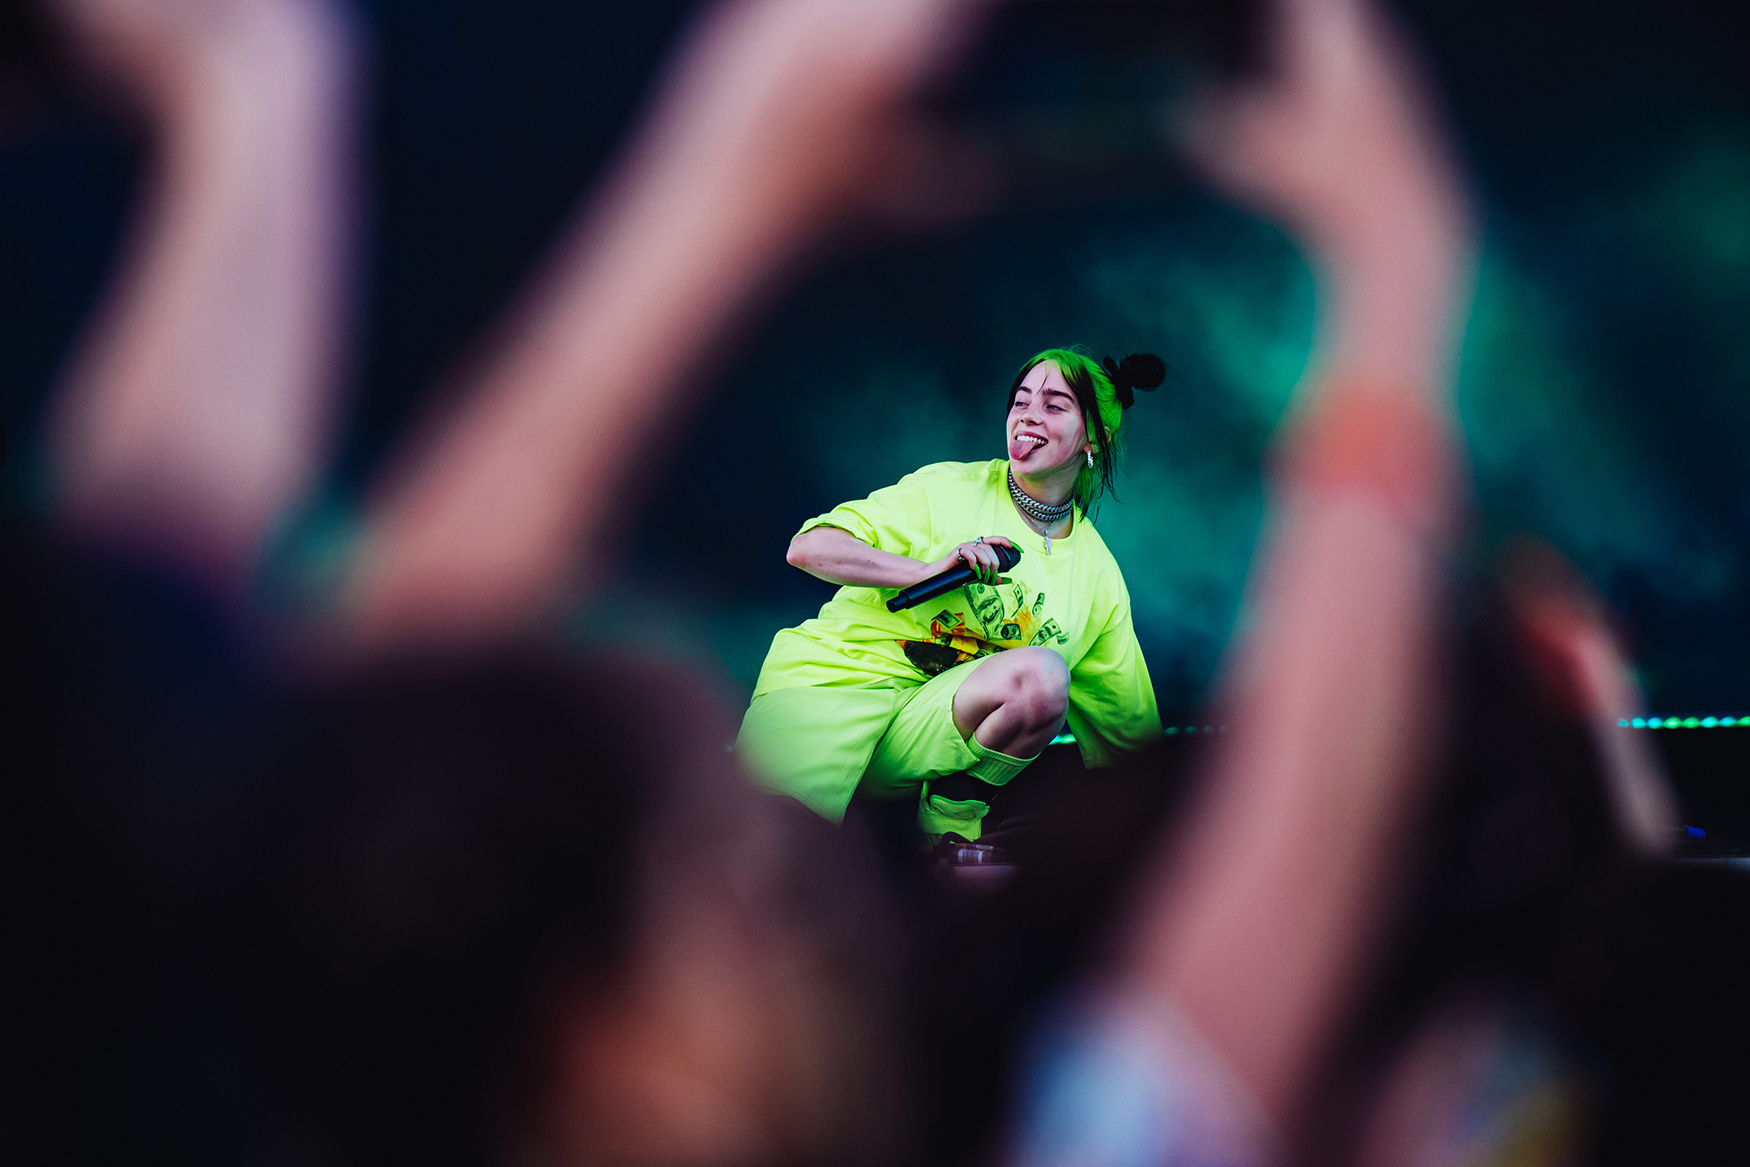 BillieEilishByCharlesReaganHacklemanforACLFest2019CRH_8479